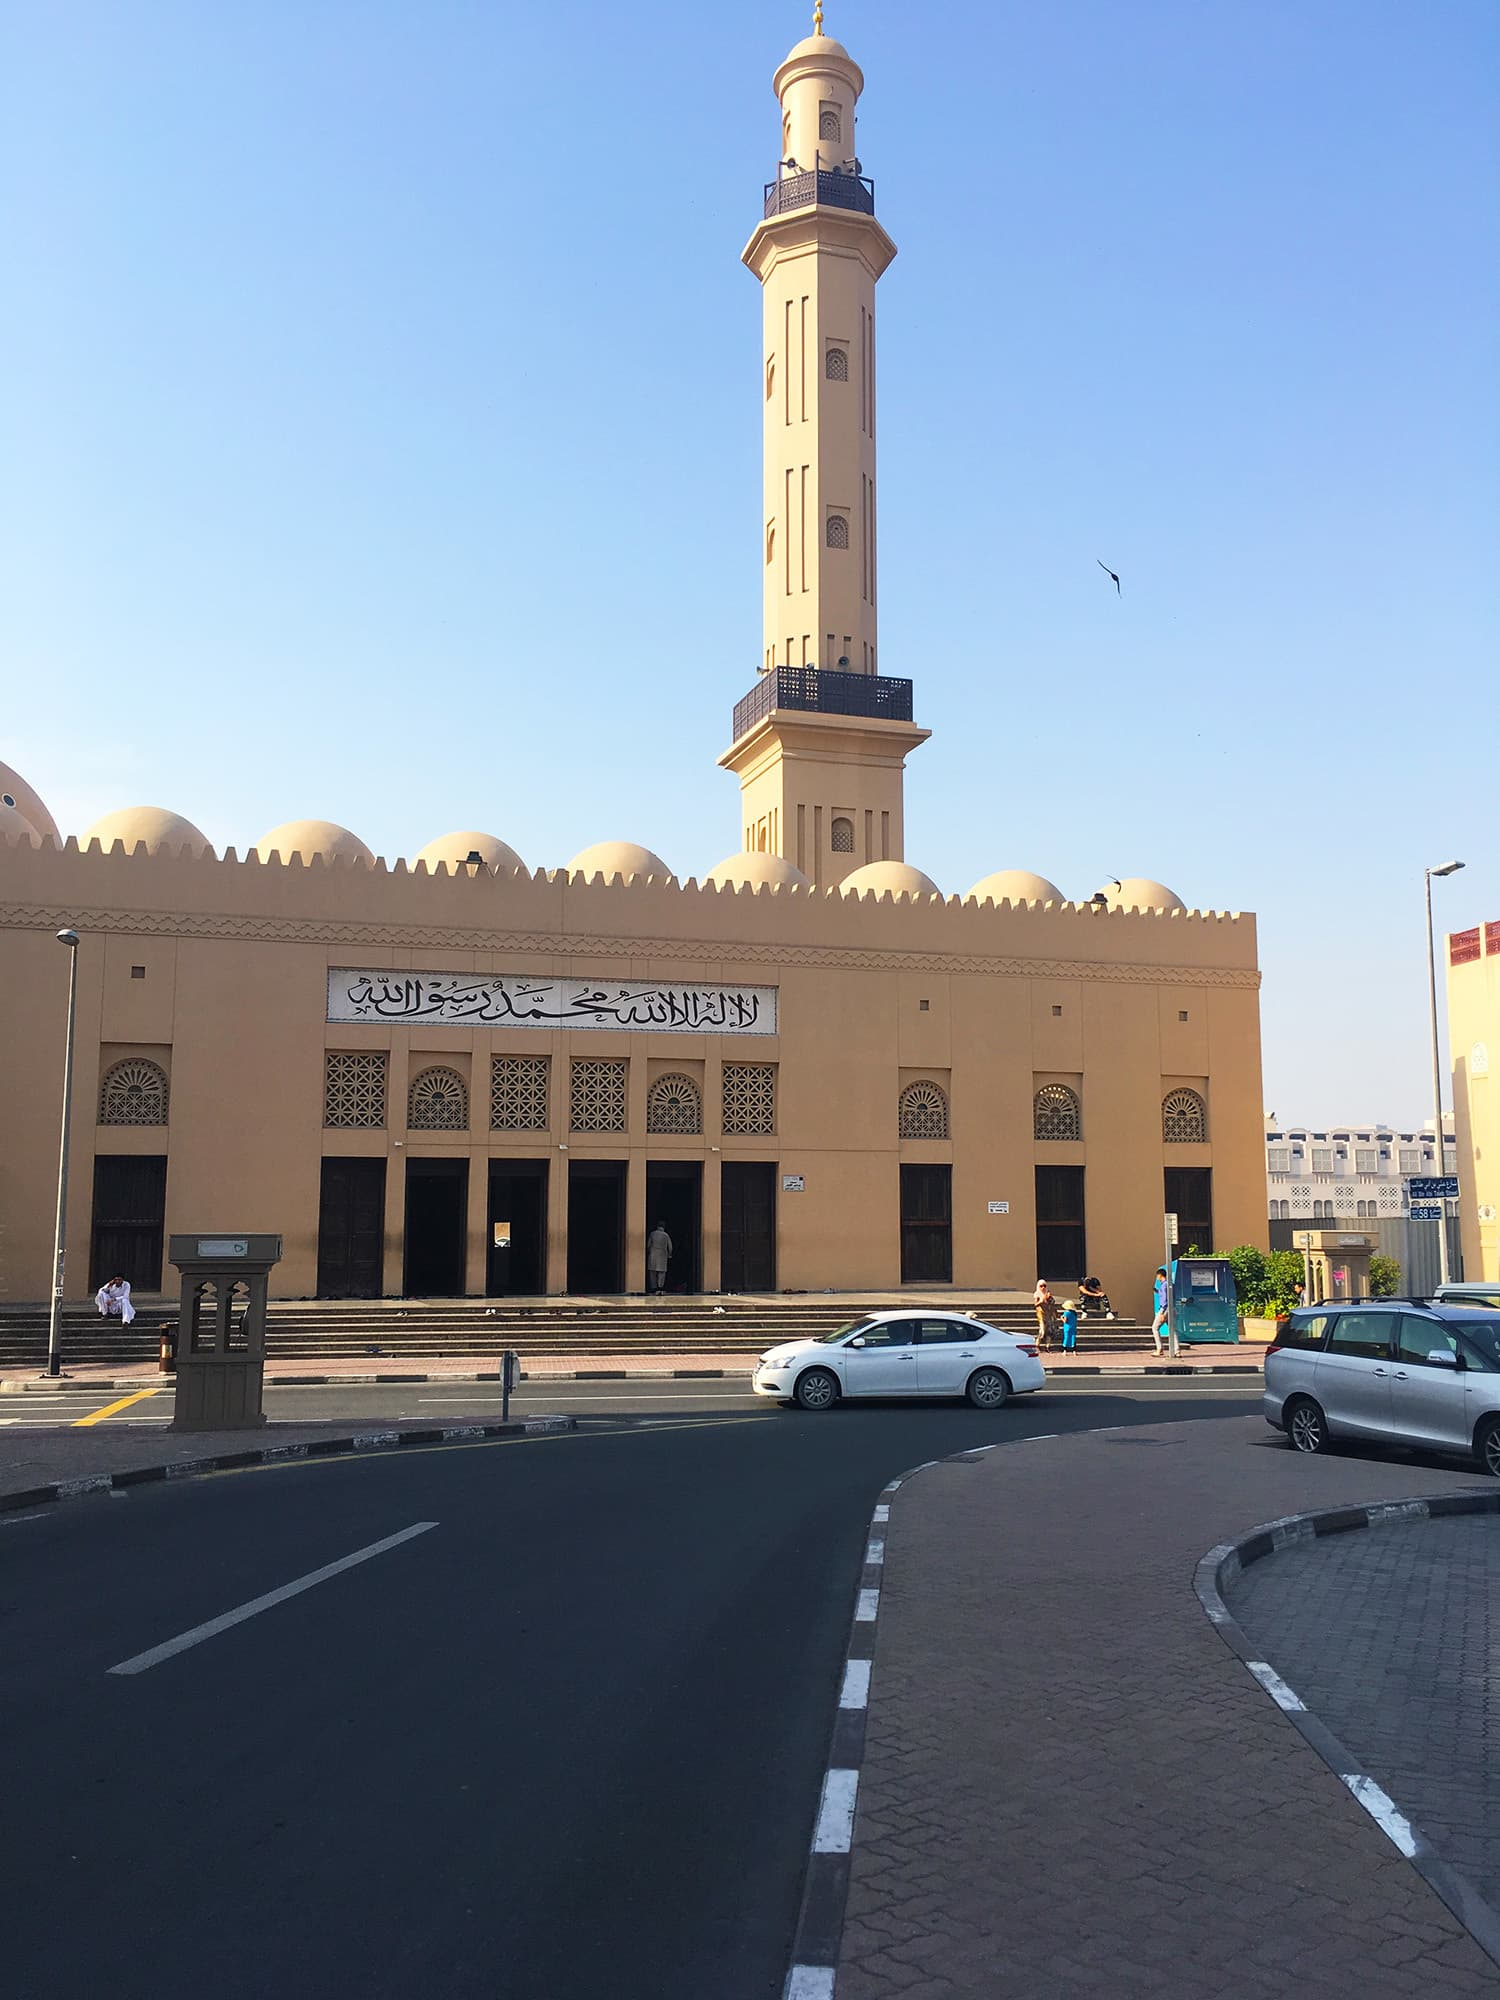 The road leading to the Grand Mosque in Bur Dubai.